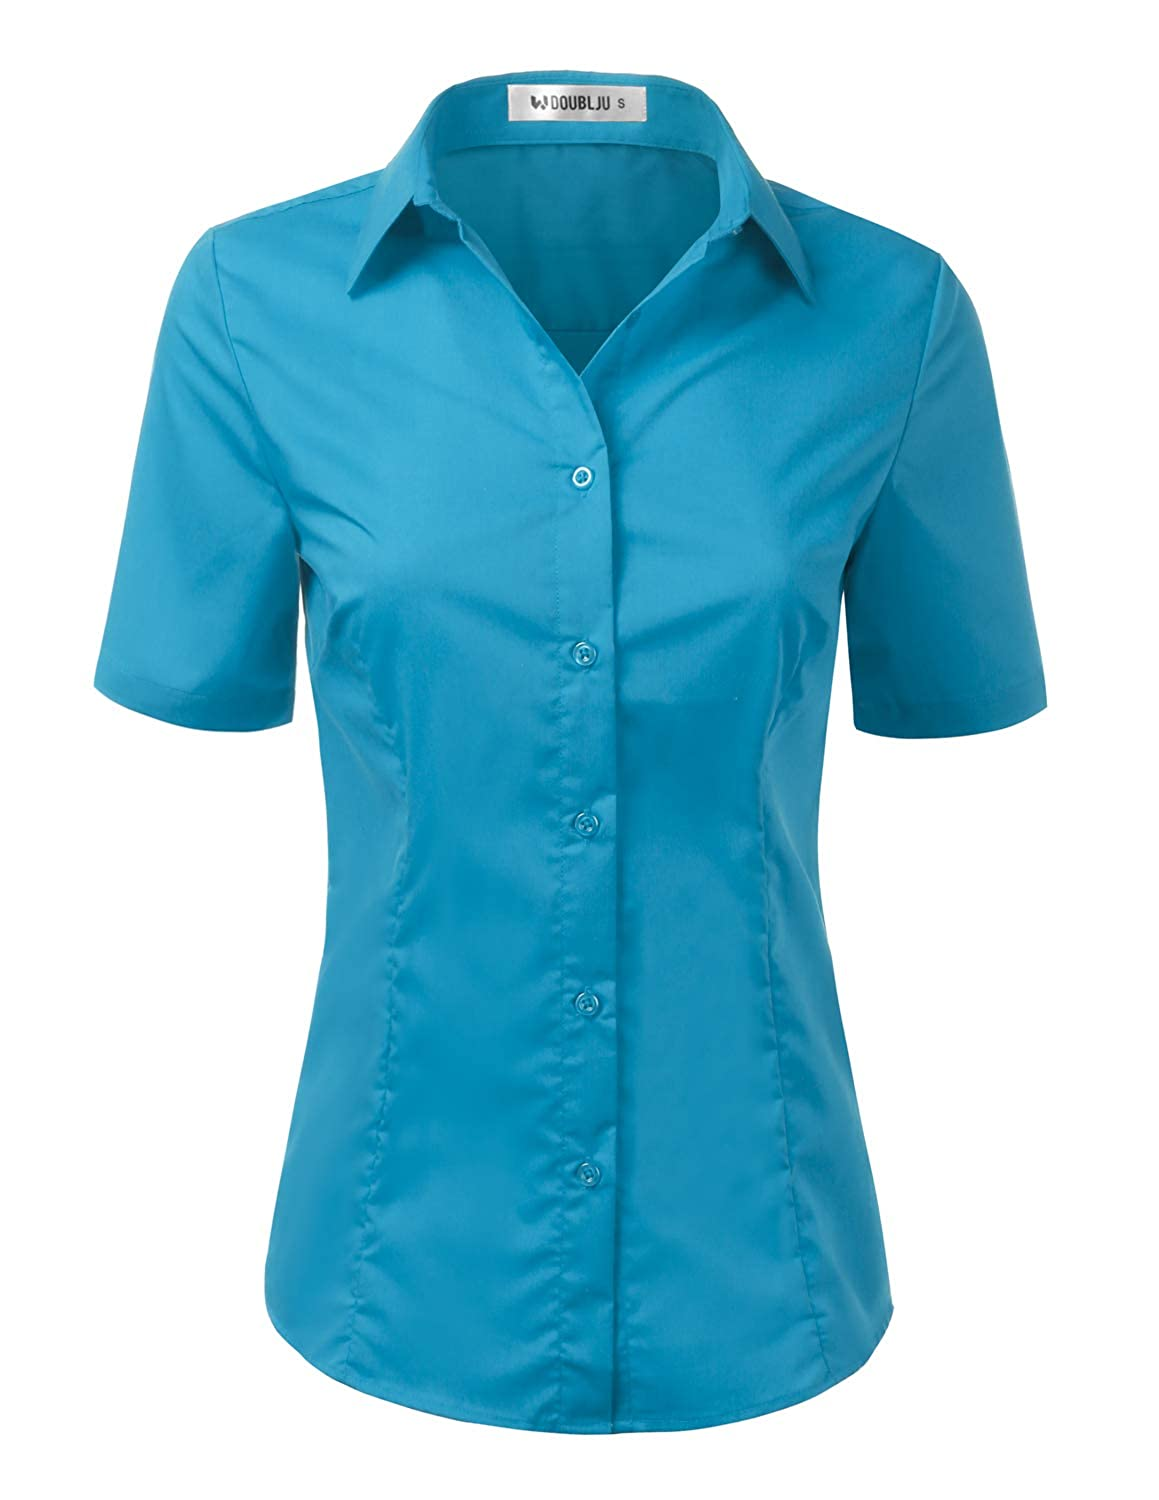 Cwtsts010_turquoise Doublju Womens Basic Simple Short Sleeve Button Down Shirt With Plus Size